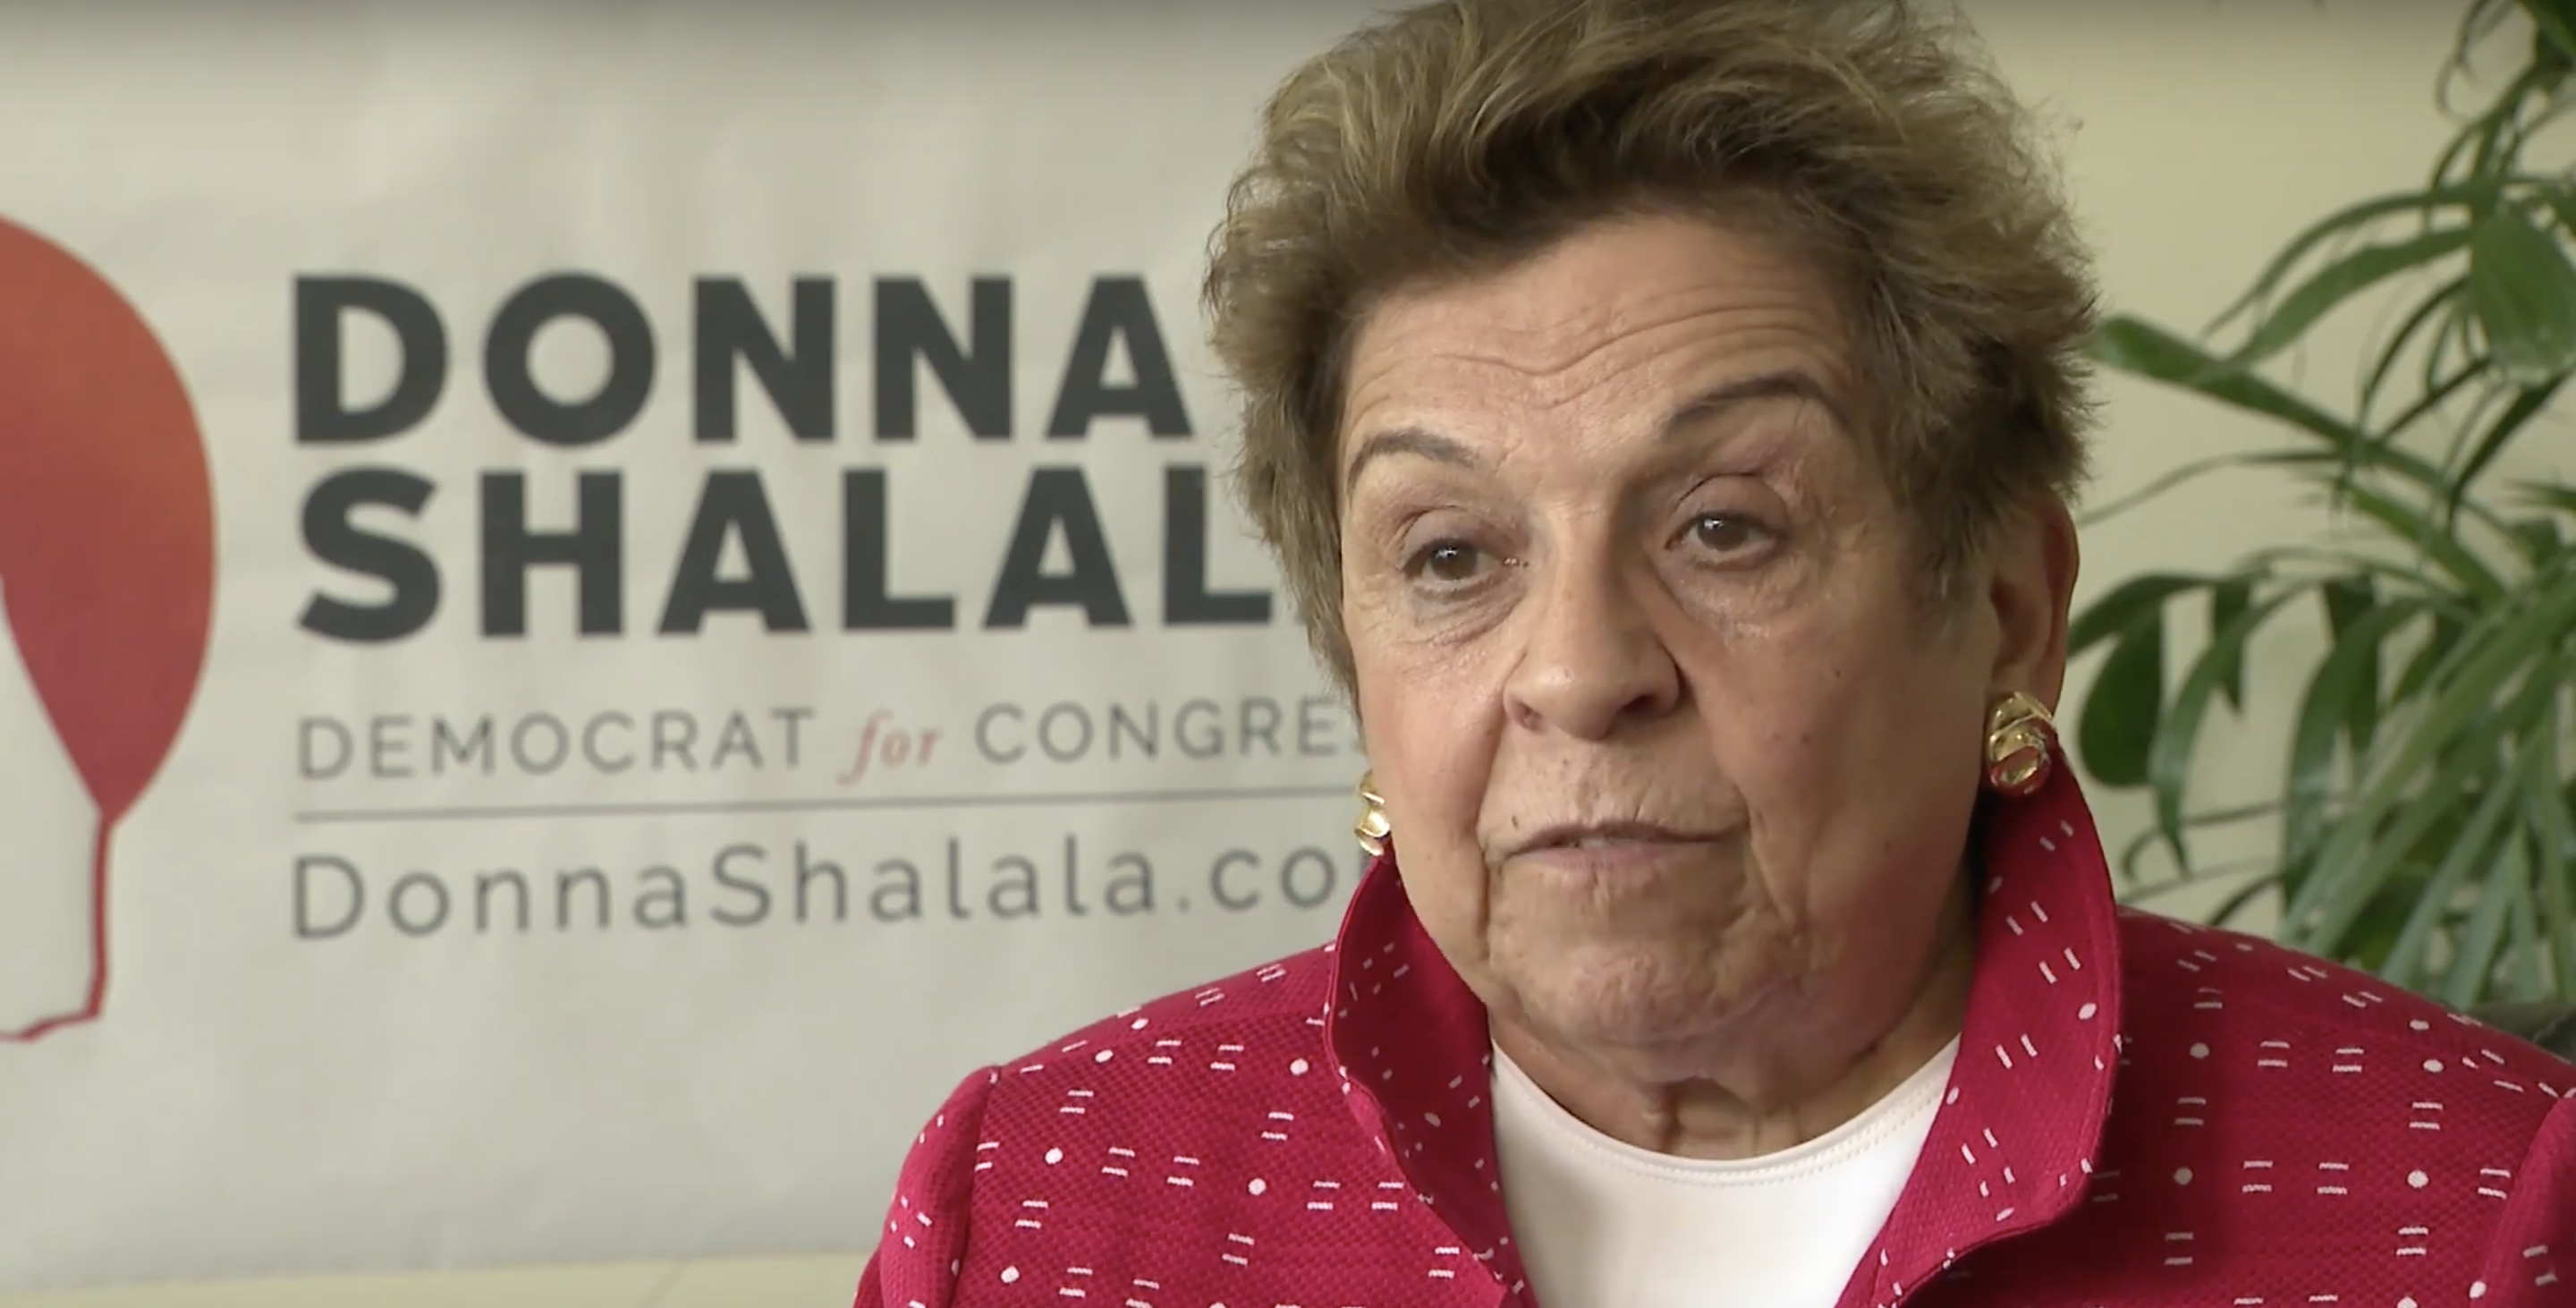 New Poll Shows Donna Shalala Trailing in CD27 Race